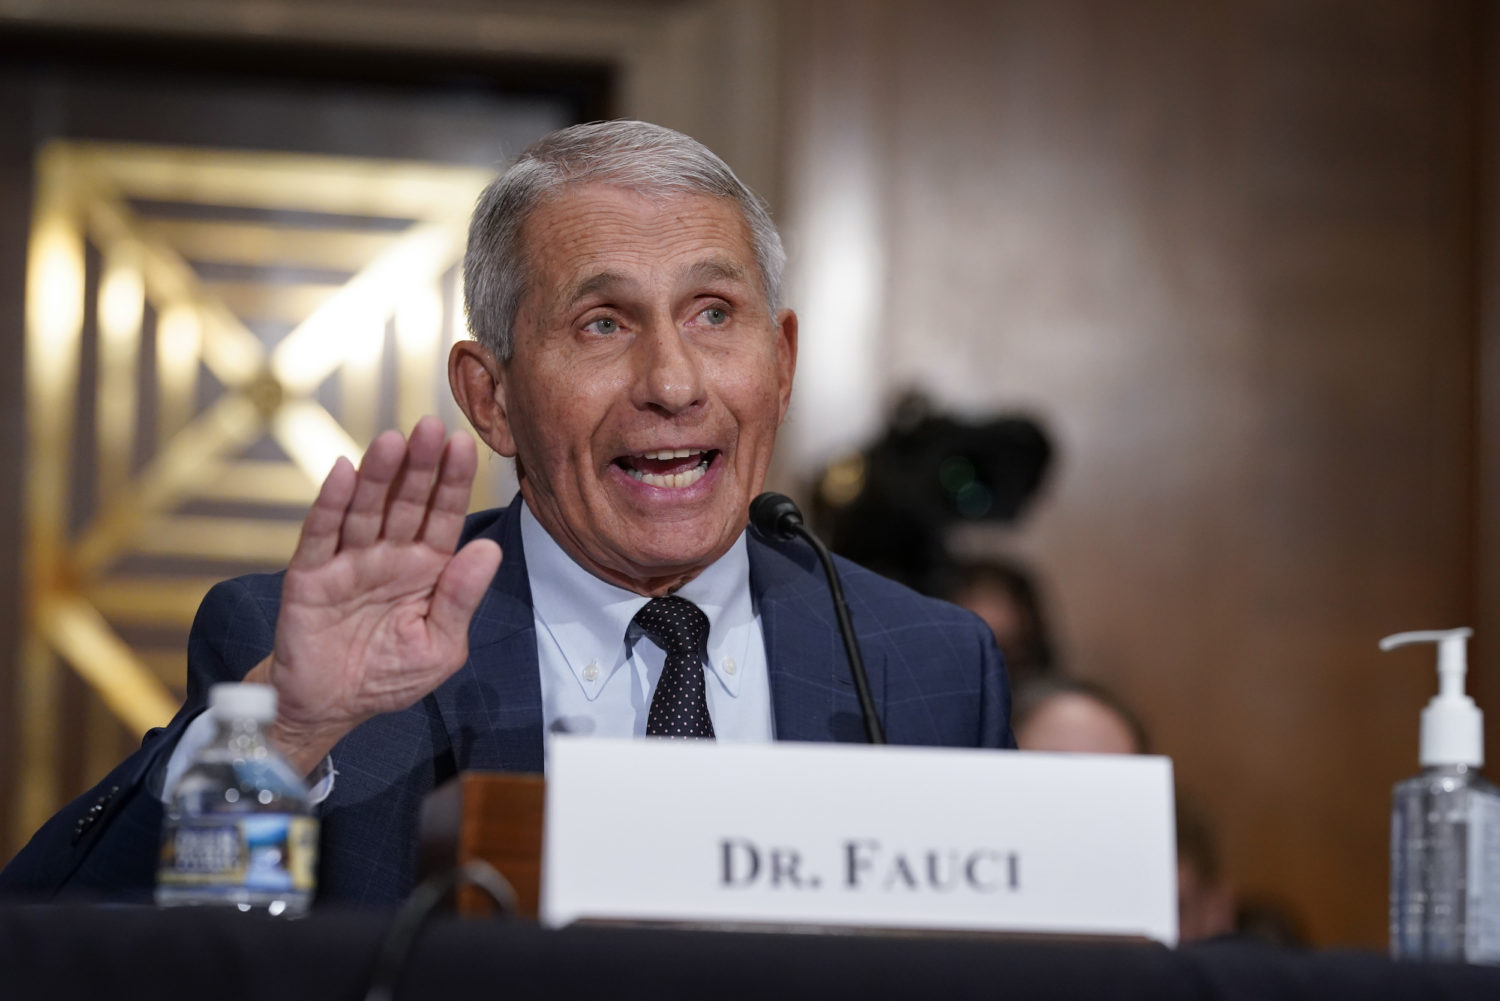 Fact check: Fauci and HHS officials are not 'plotting' for a new flu virus to force vaccinations